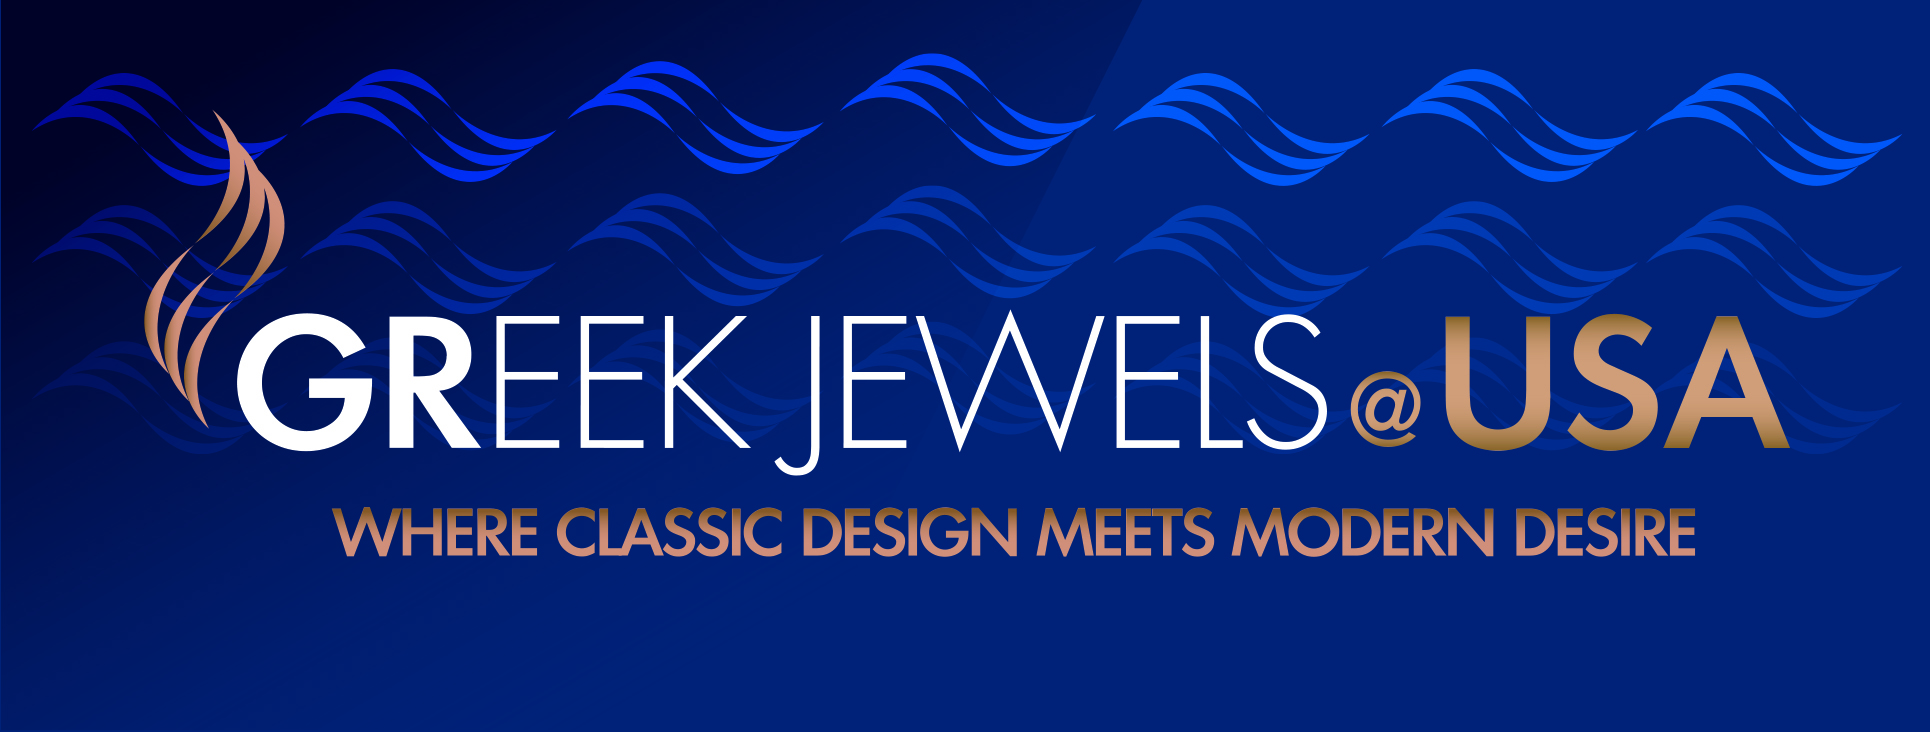 Greek Jewels at USA Logo Blue